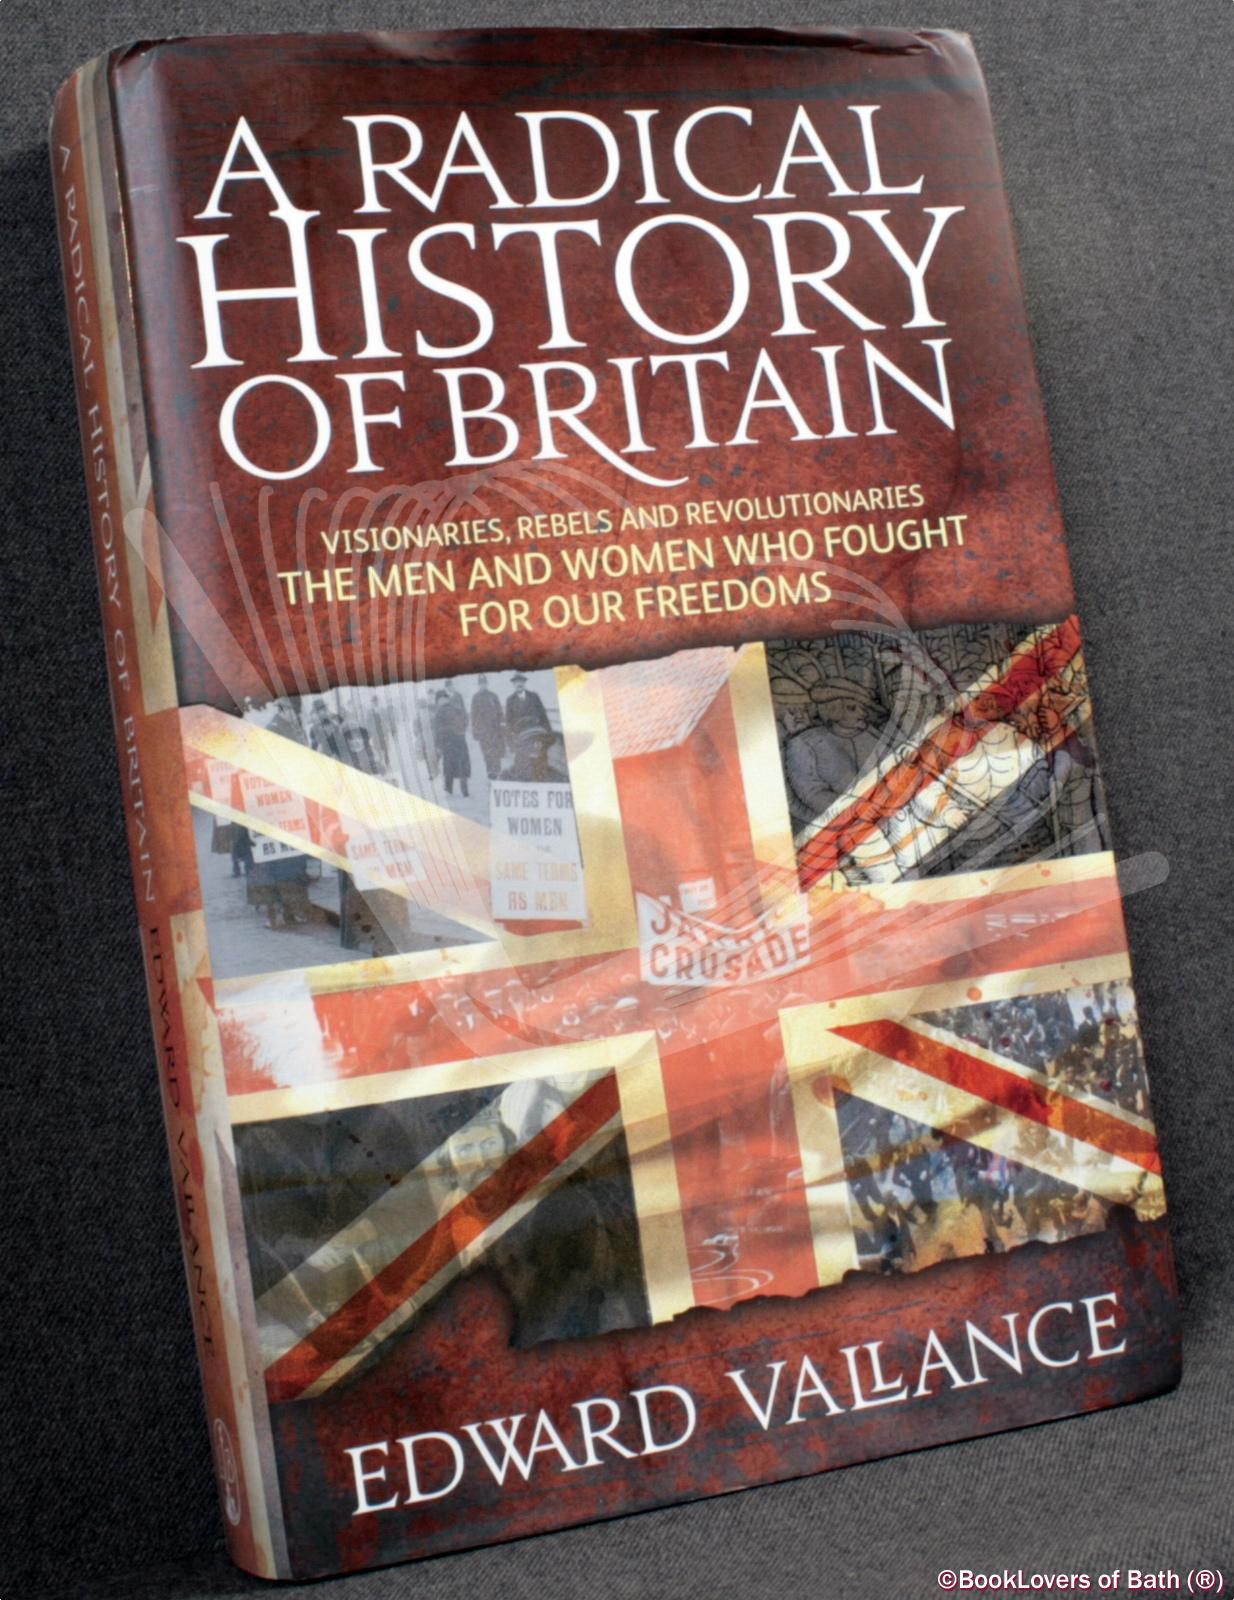 A Radical History of Britain: Visionaries, Rebels and Revolutionaries - The Men and Women Who Fought for Our Freedoms - Edward Vallance